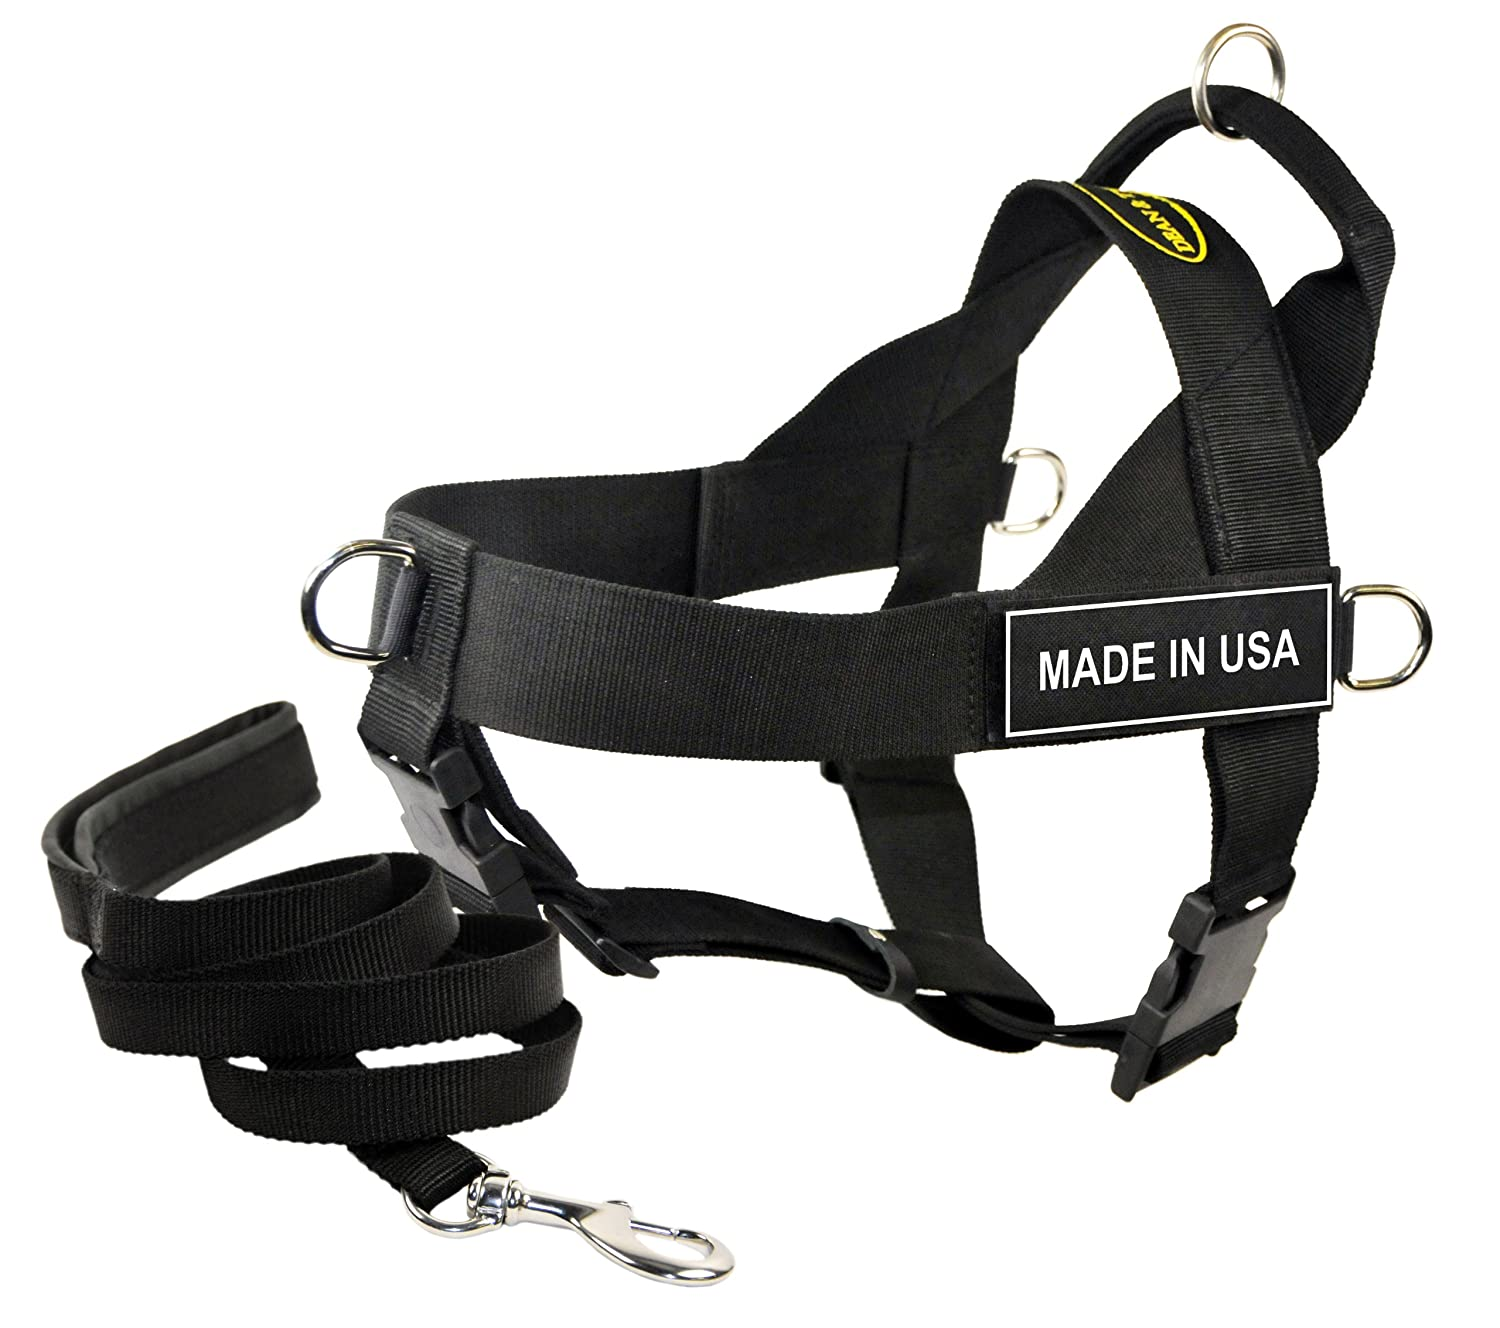 Dean & Tyler's DT Universal Made in USA  Harness, X-Small, with 6 ft Padded Puppy Leash.